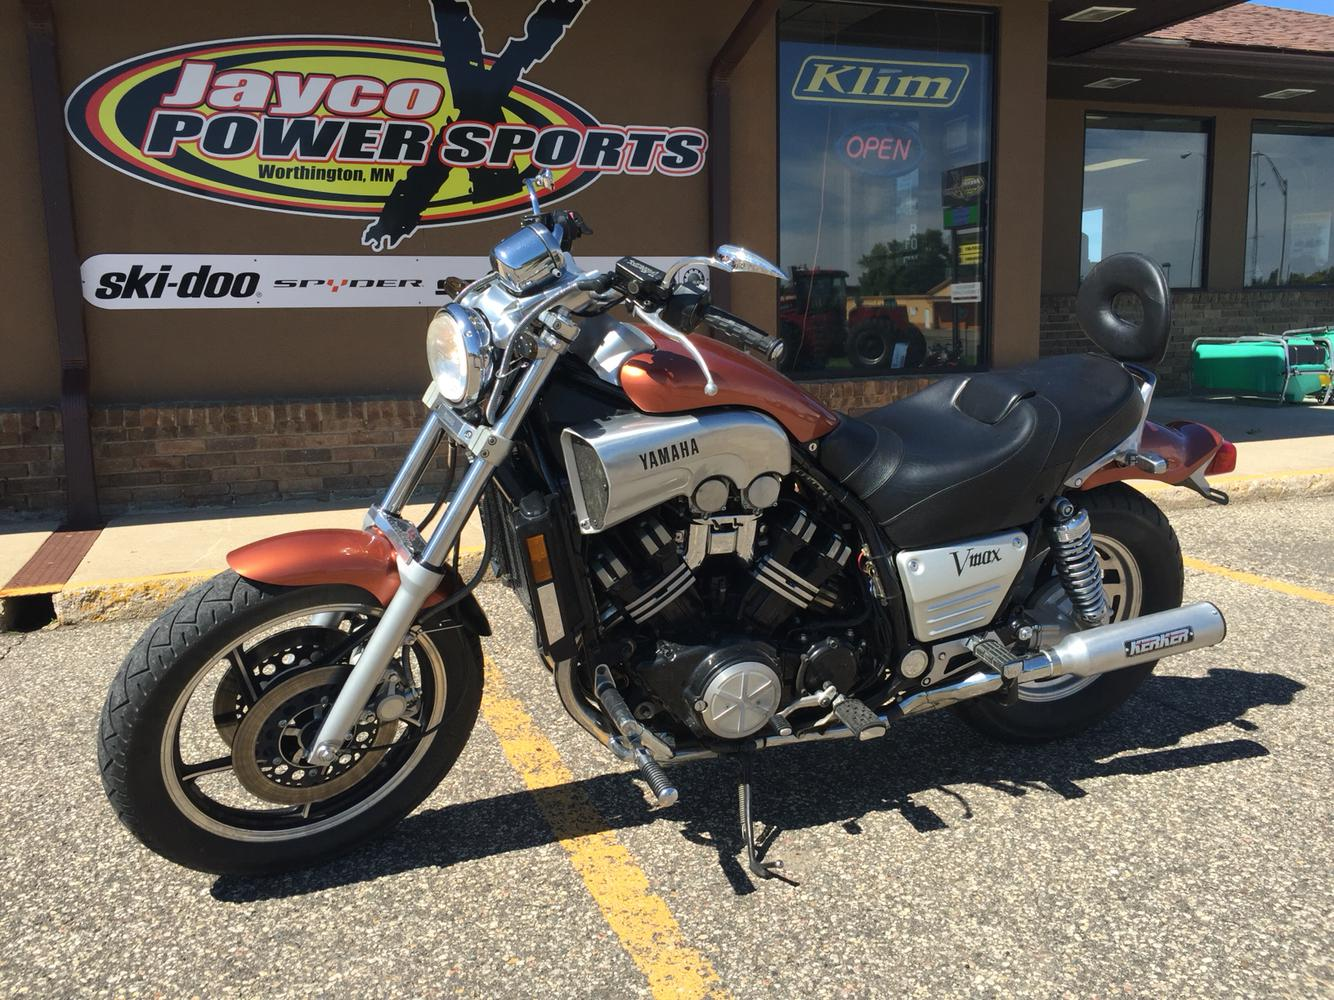 1985 Yamaha VMAX 1200 For Sale In Worthington MN